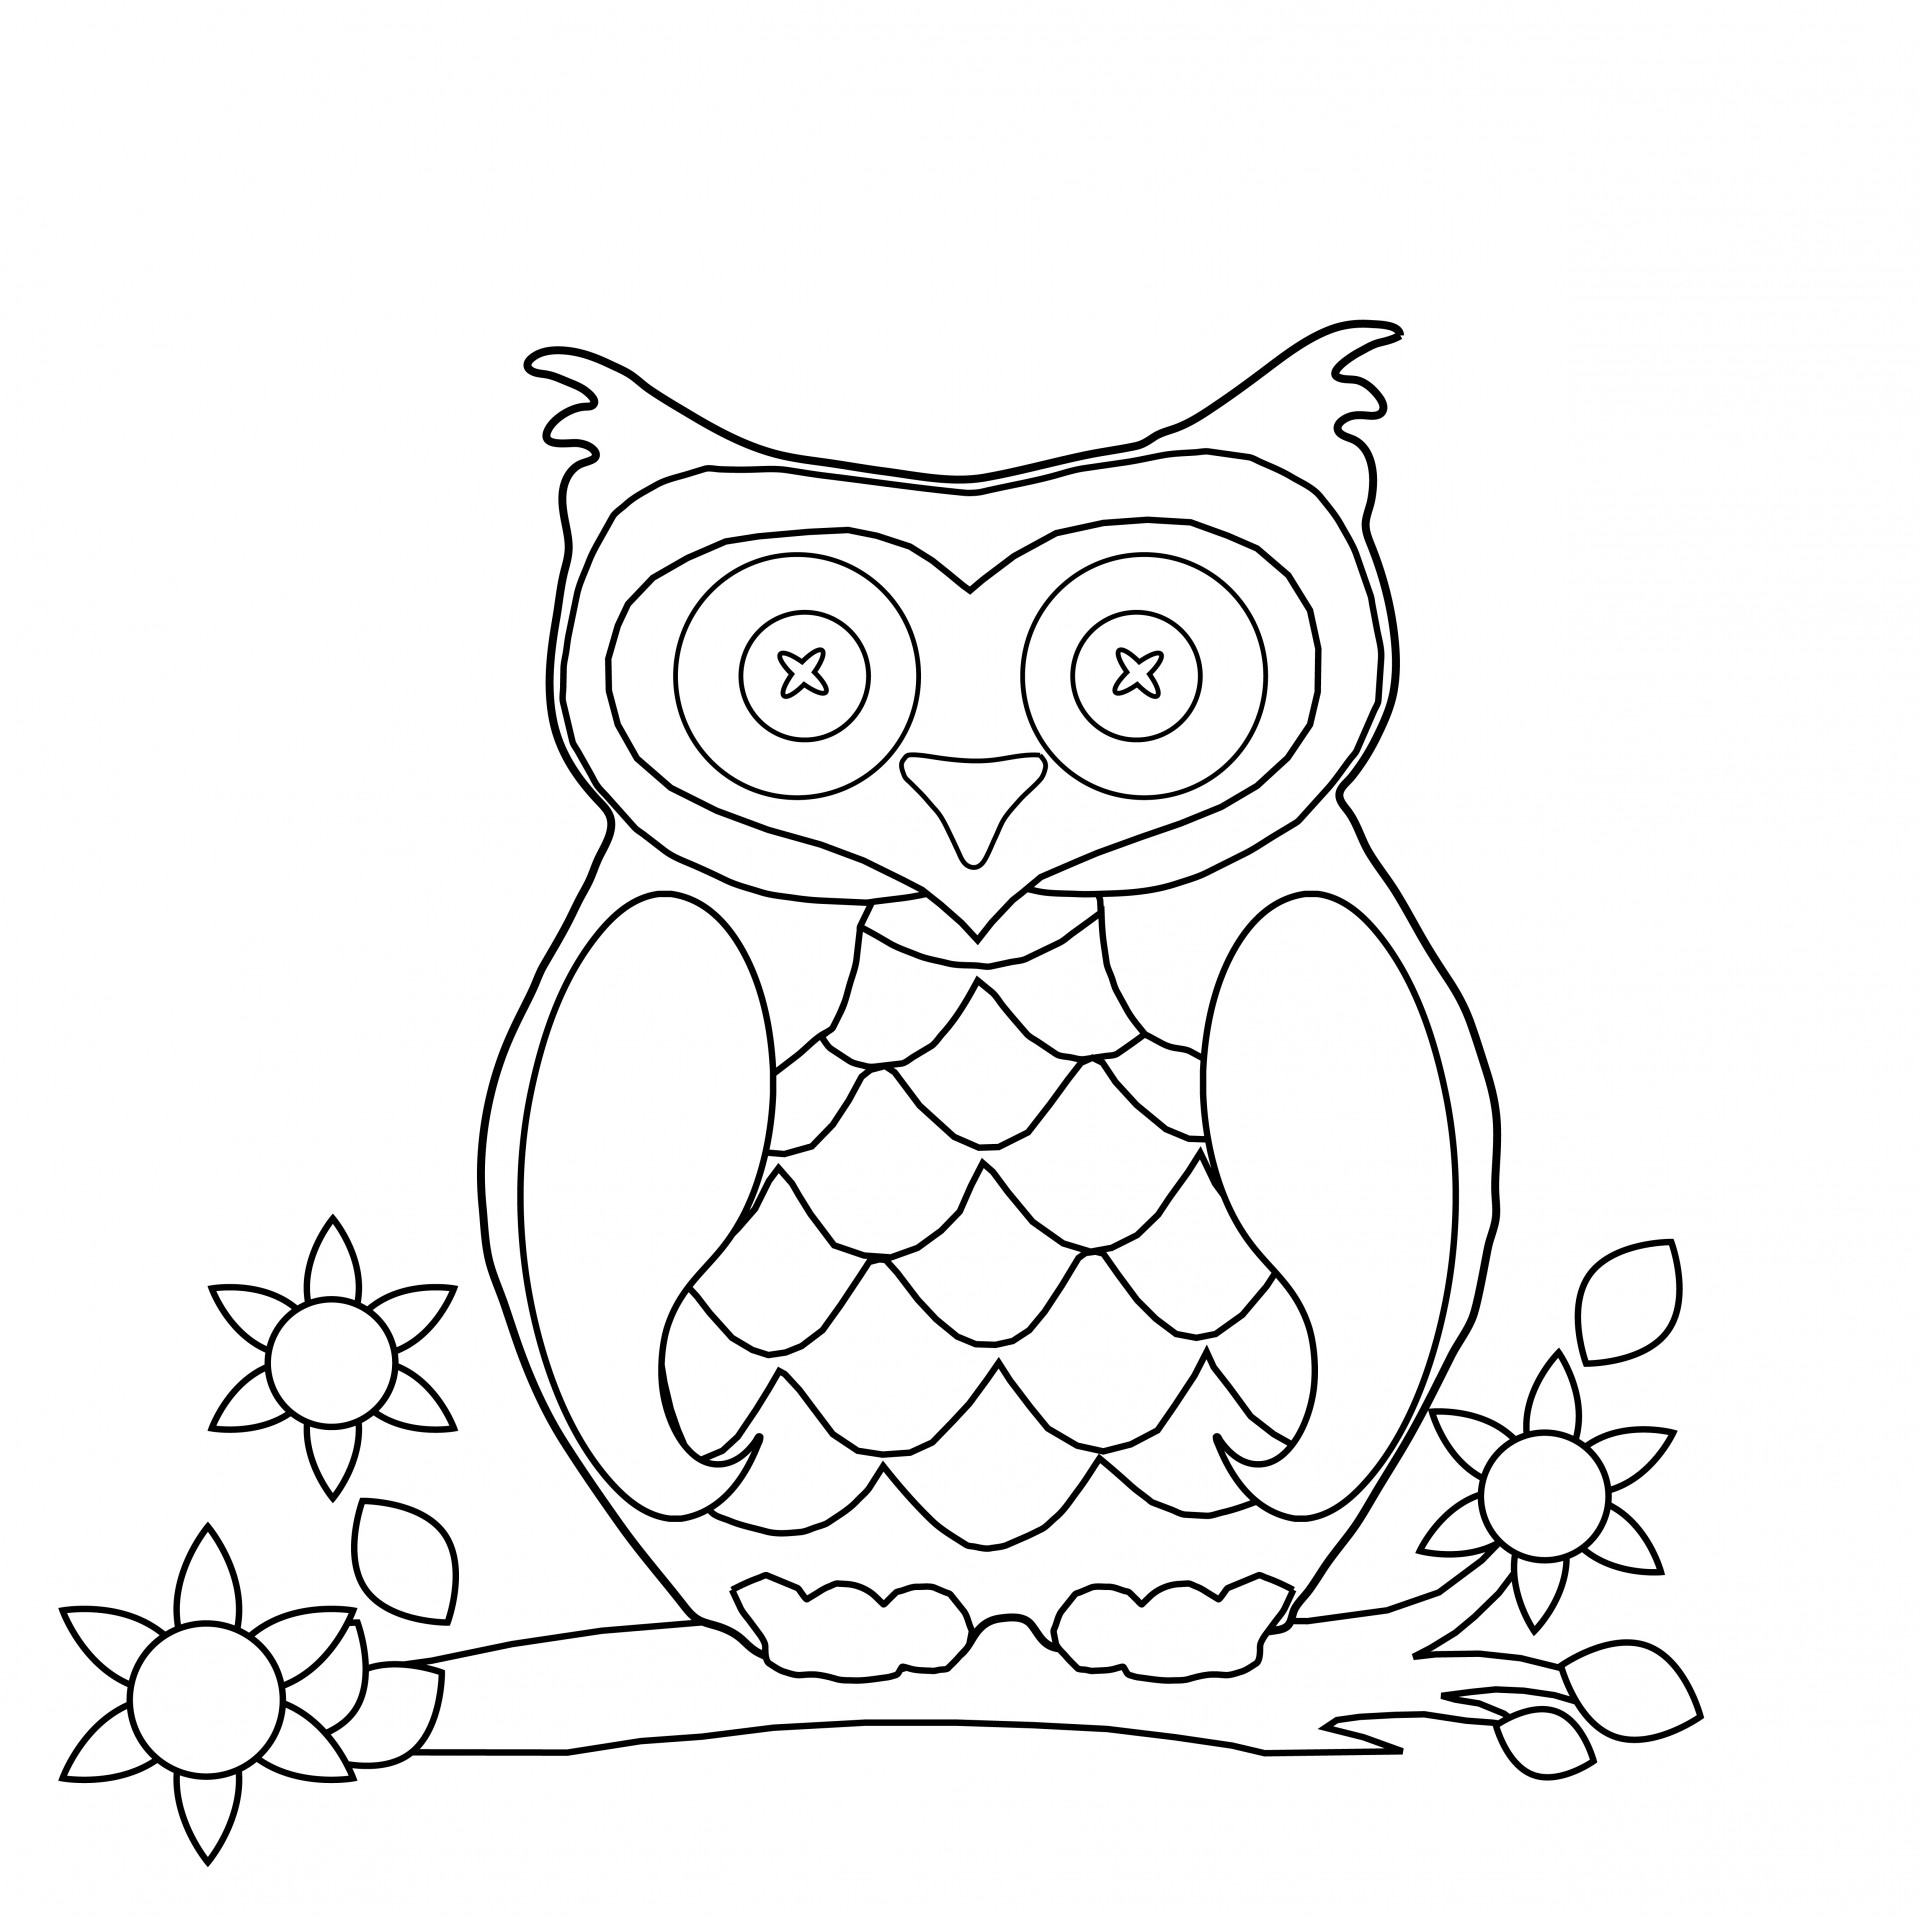 coloring pages free free printable abstract coloring pages for adults pages free coloring